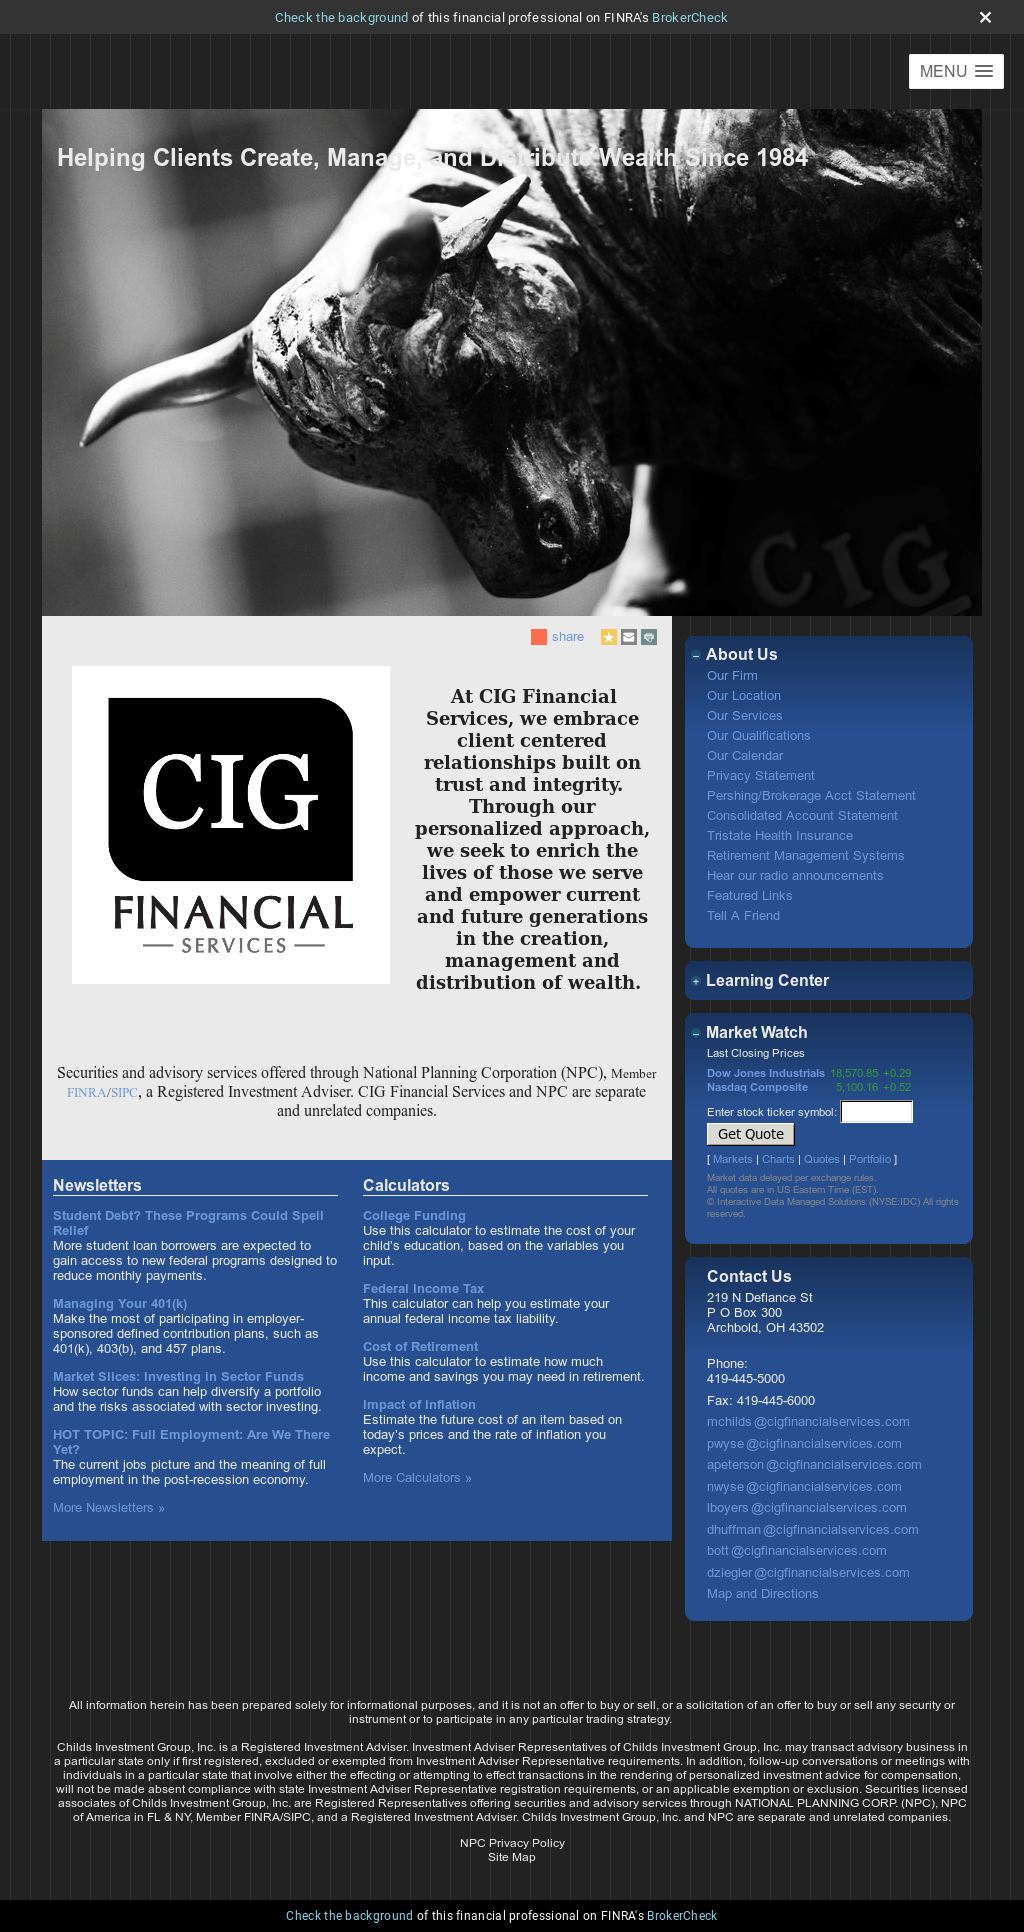 Cigfinancialservices Competitors, Revenue and Employees - Owler